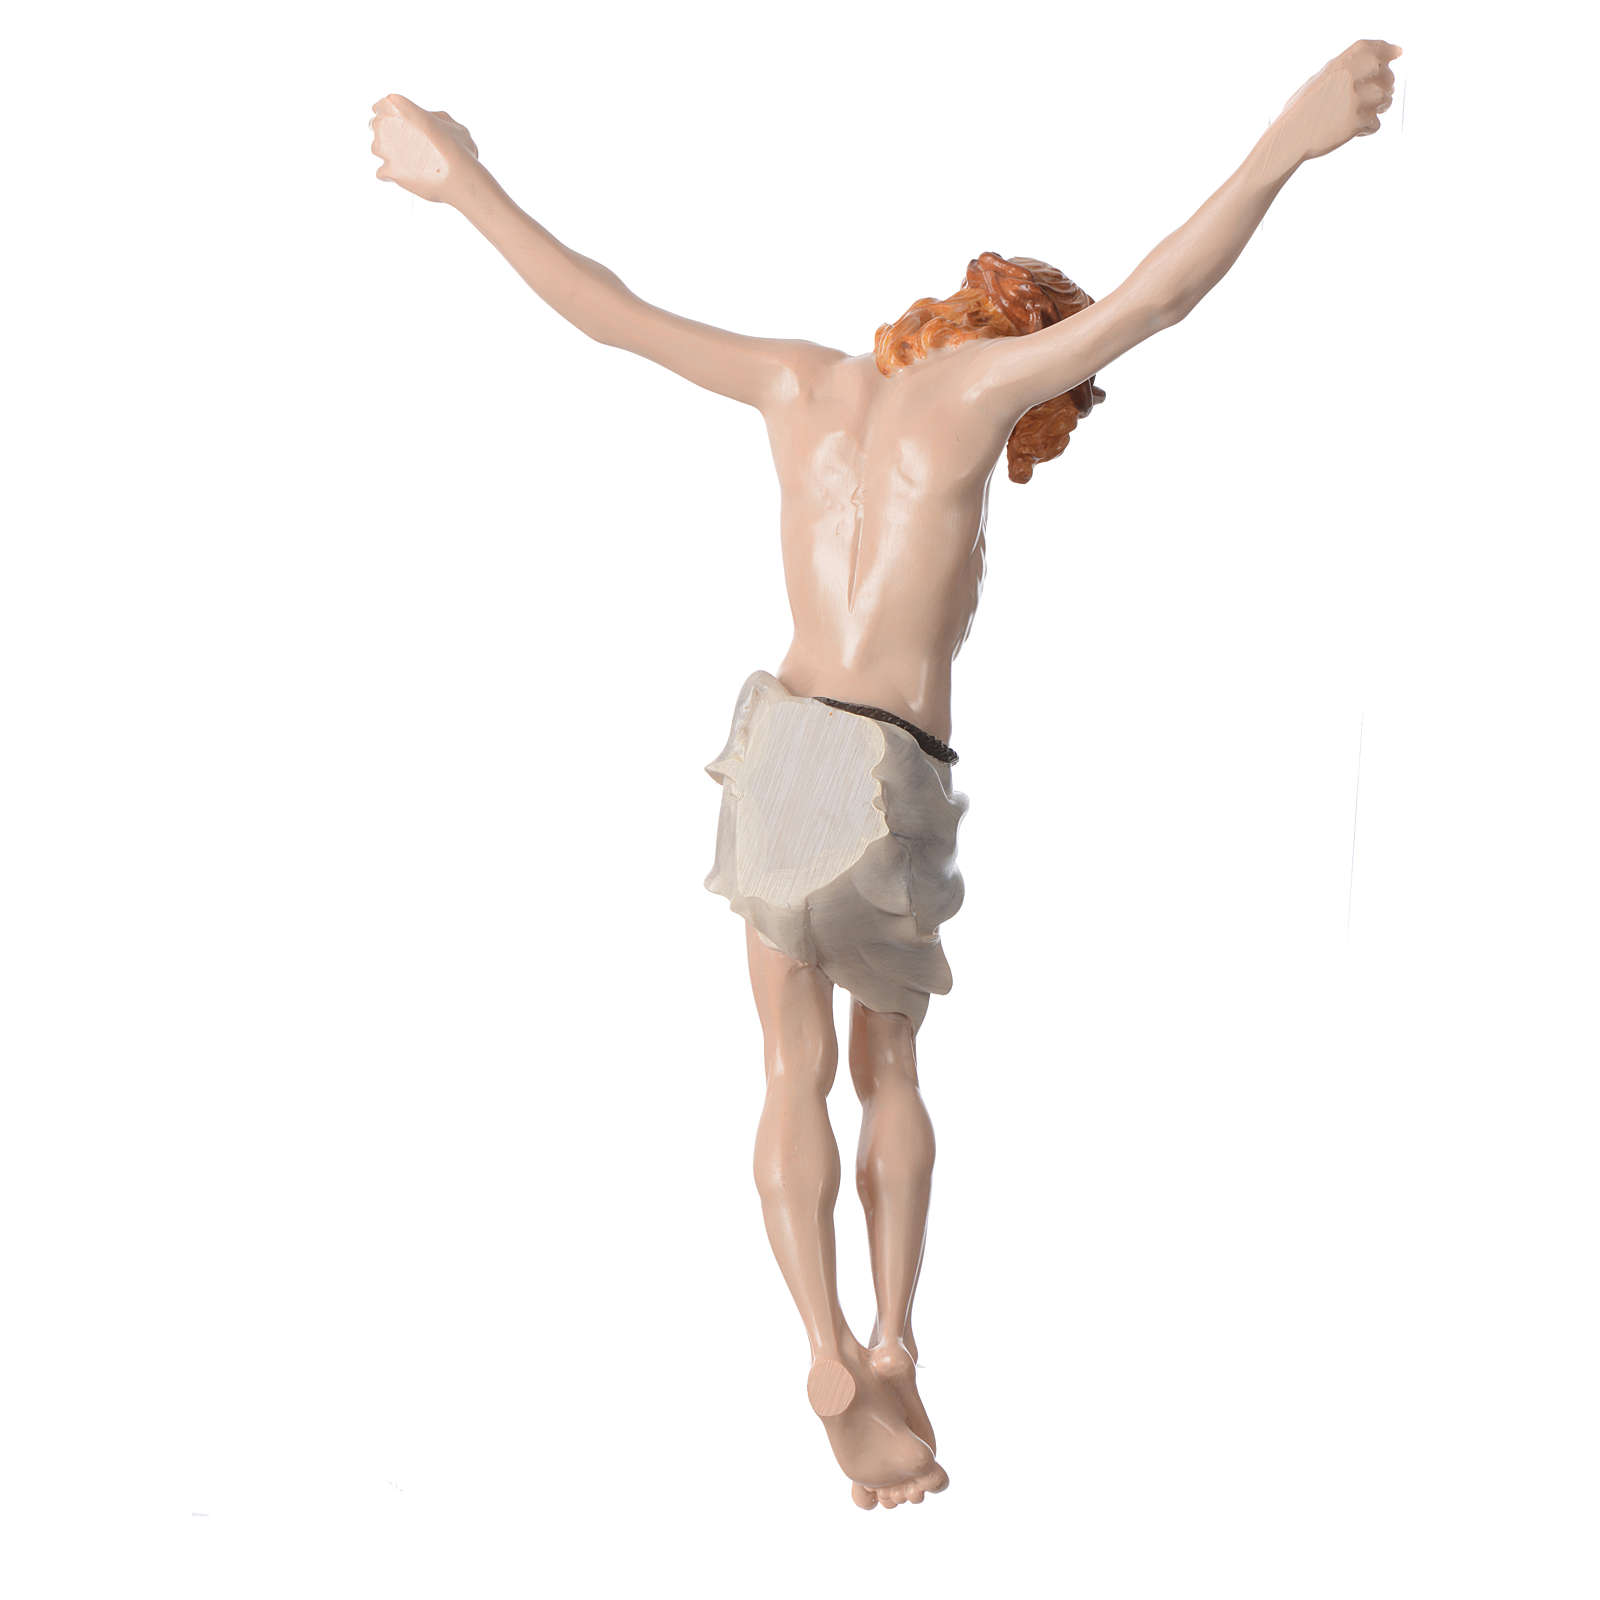 Christ's body in marble dust hand painted 4